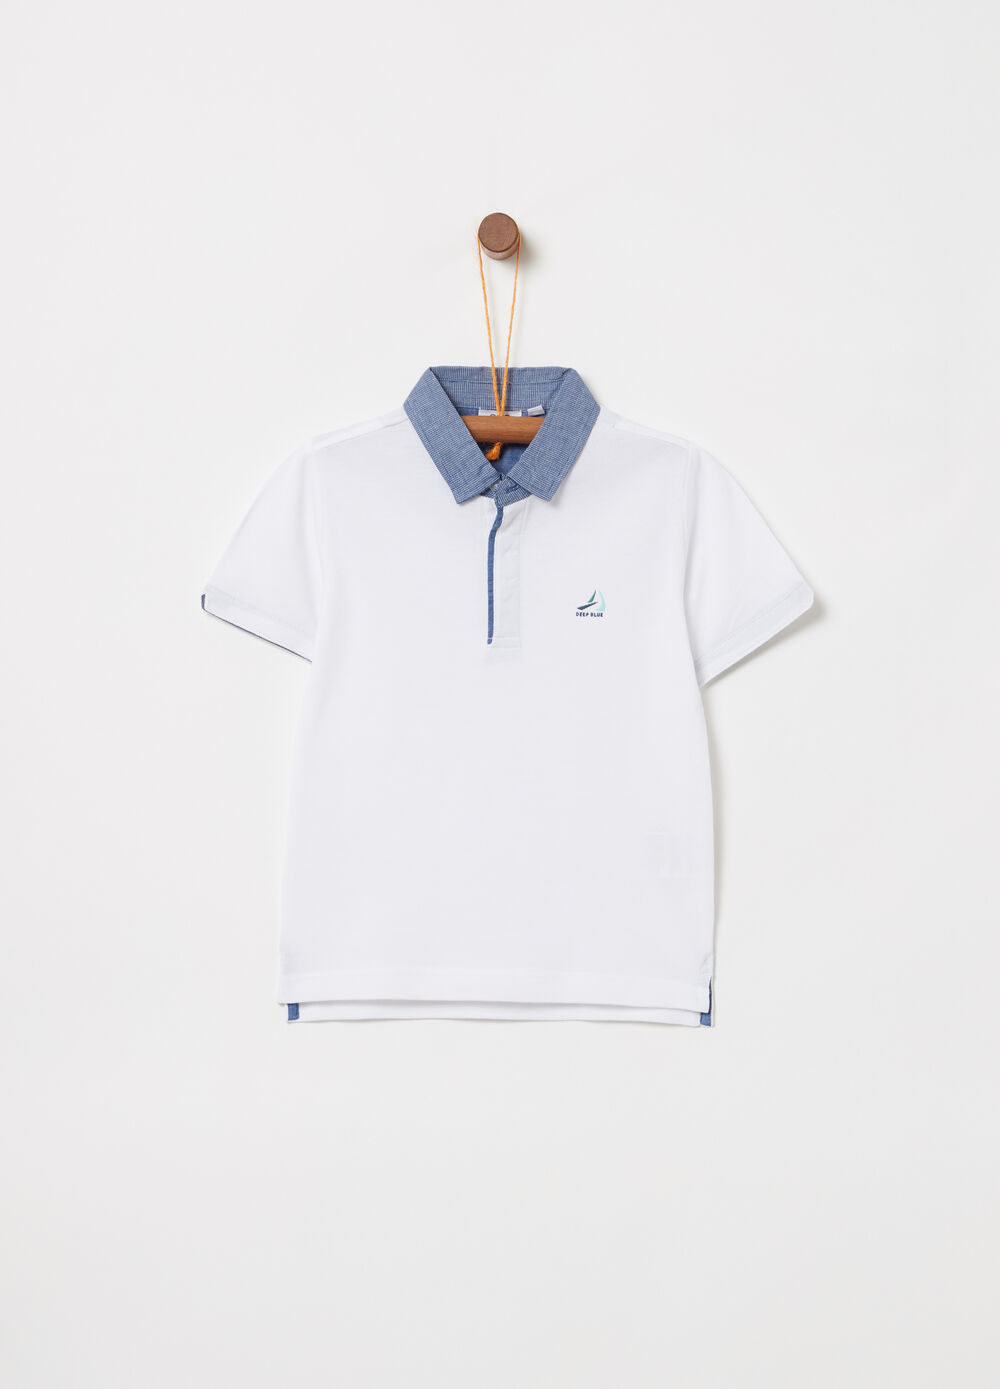 Piquet polo shirt with chambray inserts with embroidery